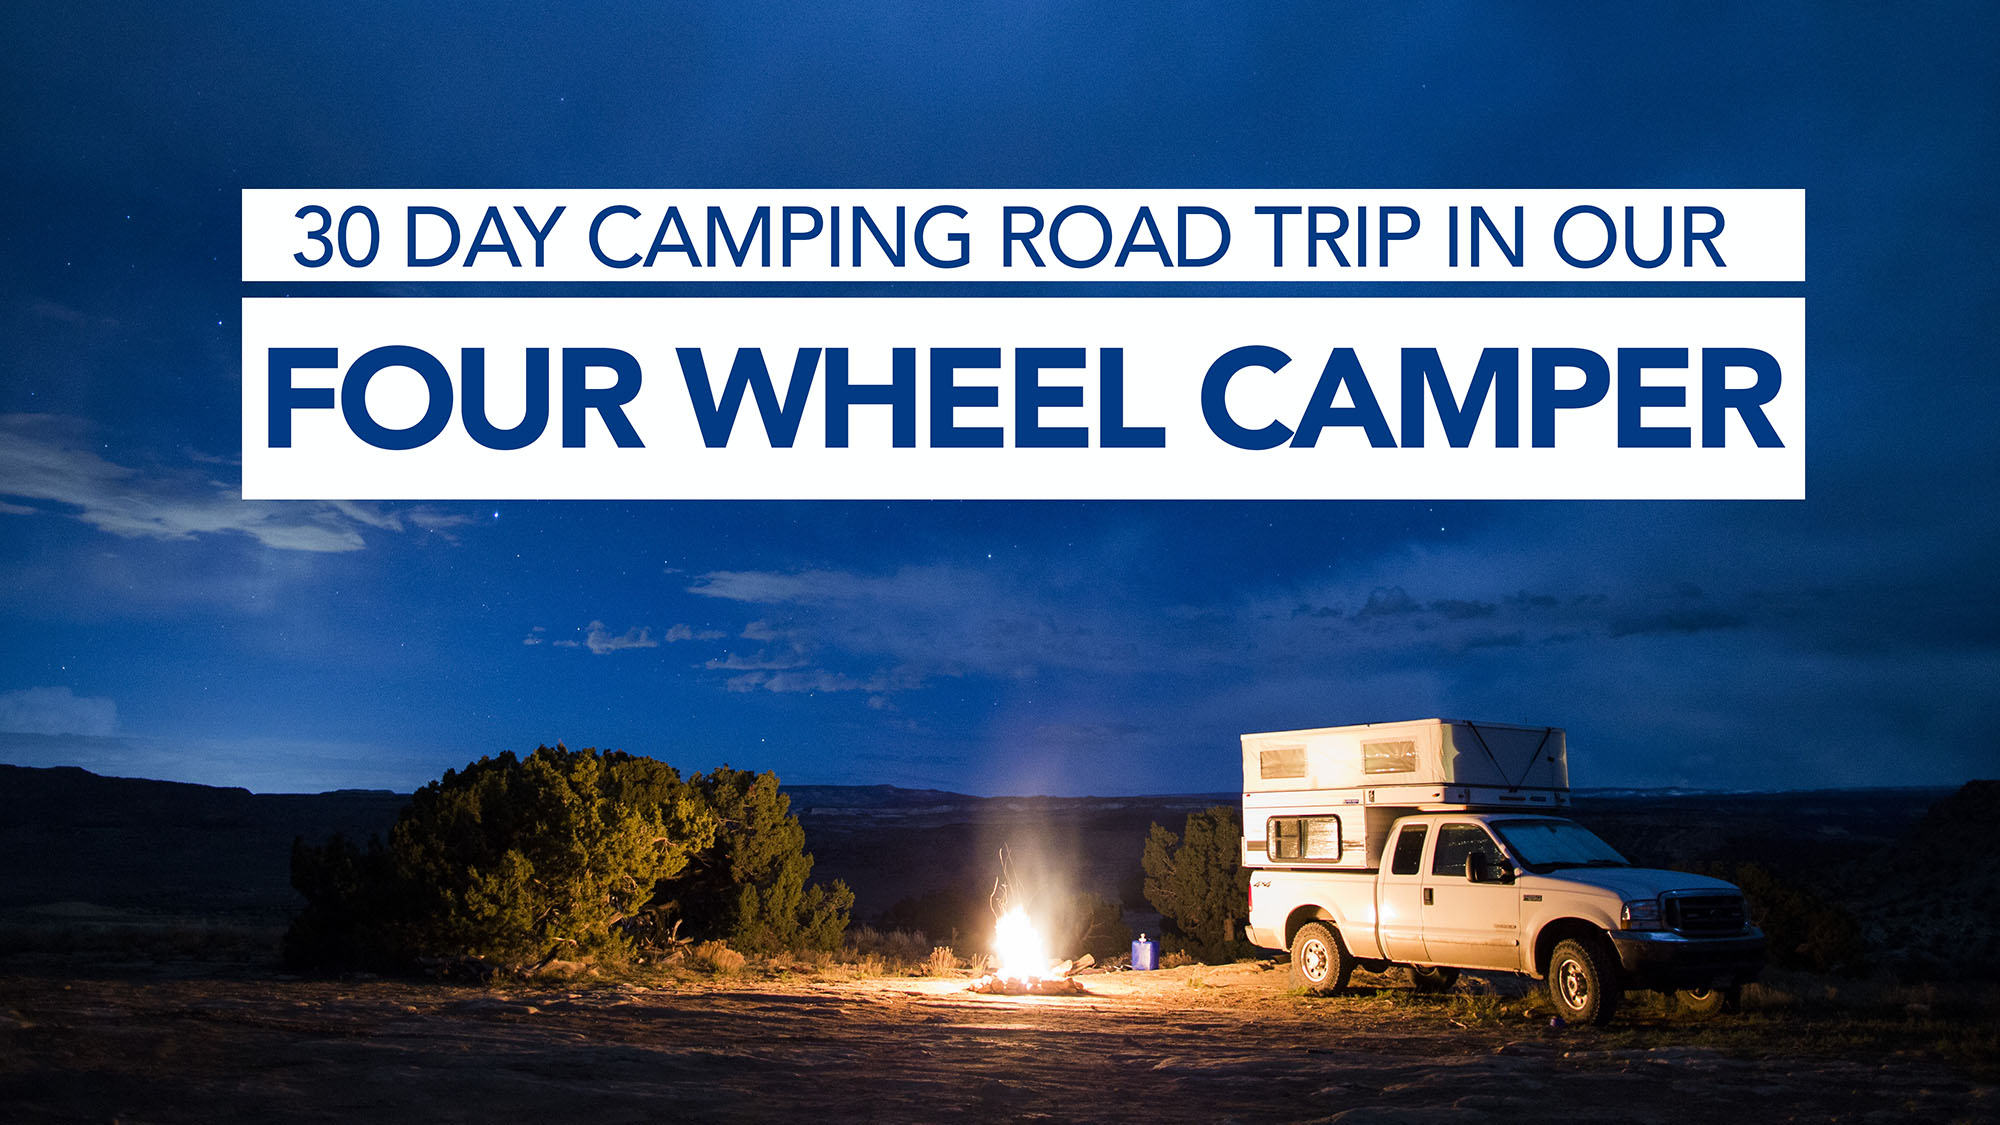 Take a glimpse at the Four Wheel Camper lifestyle